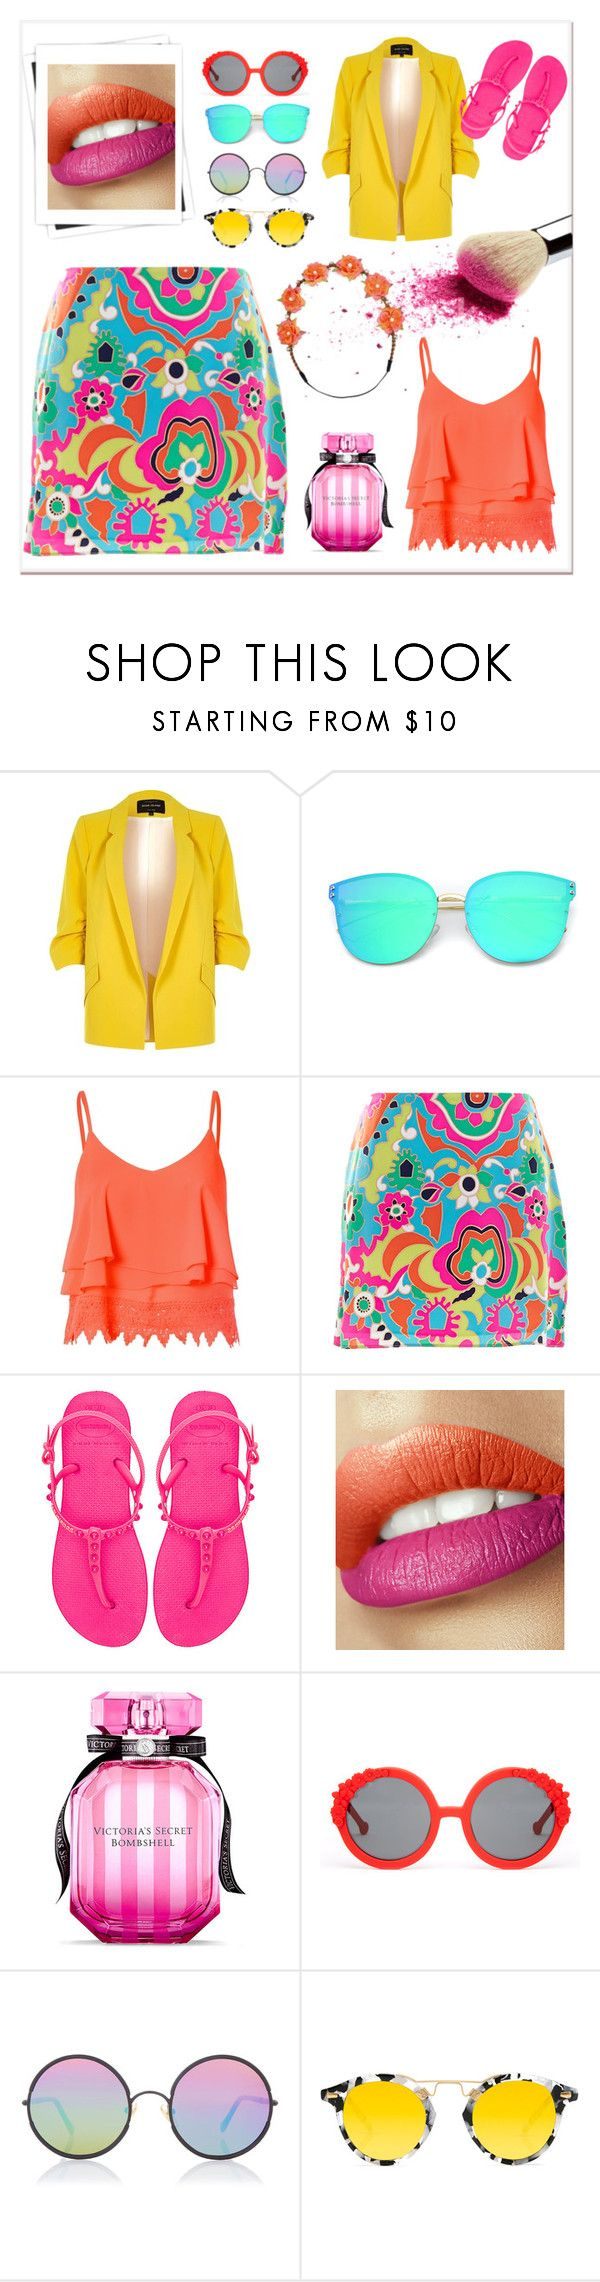 """""""2 - Colour Craze"""" by teentrenders ❤ liked on Polyvore featuring River Island, Glamorous, Alice & Trixie, Havaianas, Victoria's Secret, Preen, Sunday Somewhere, Krewe and Carole"""